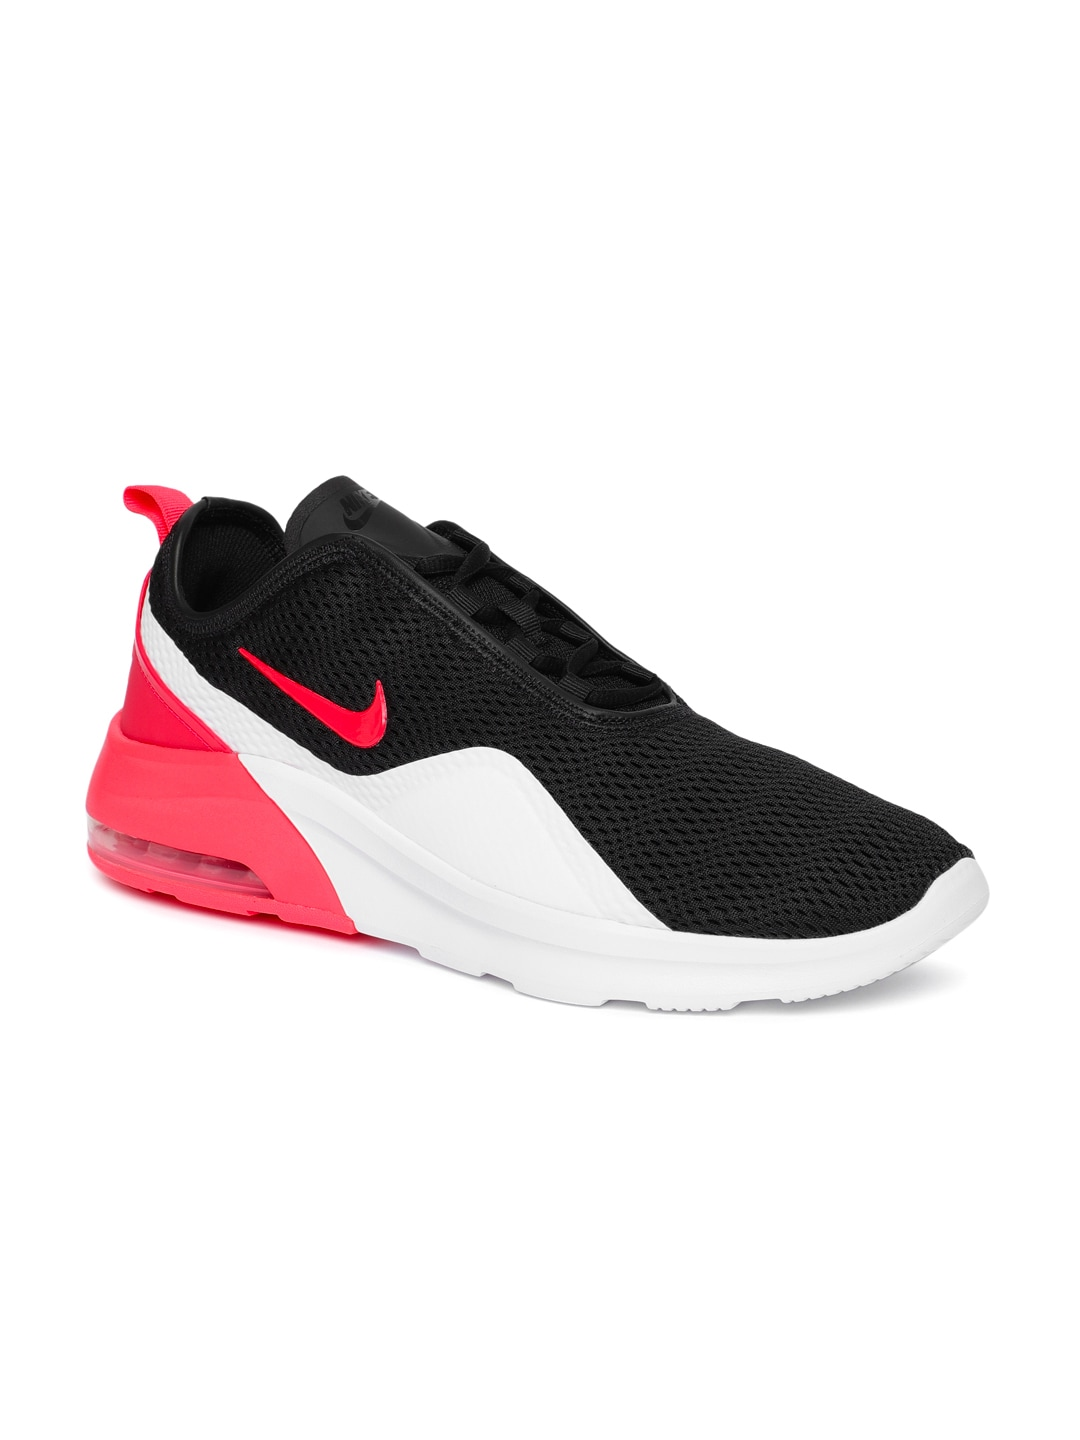 db75136986b518 Nike Shoes for Men - Buy Men s Nike Shoes Online